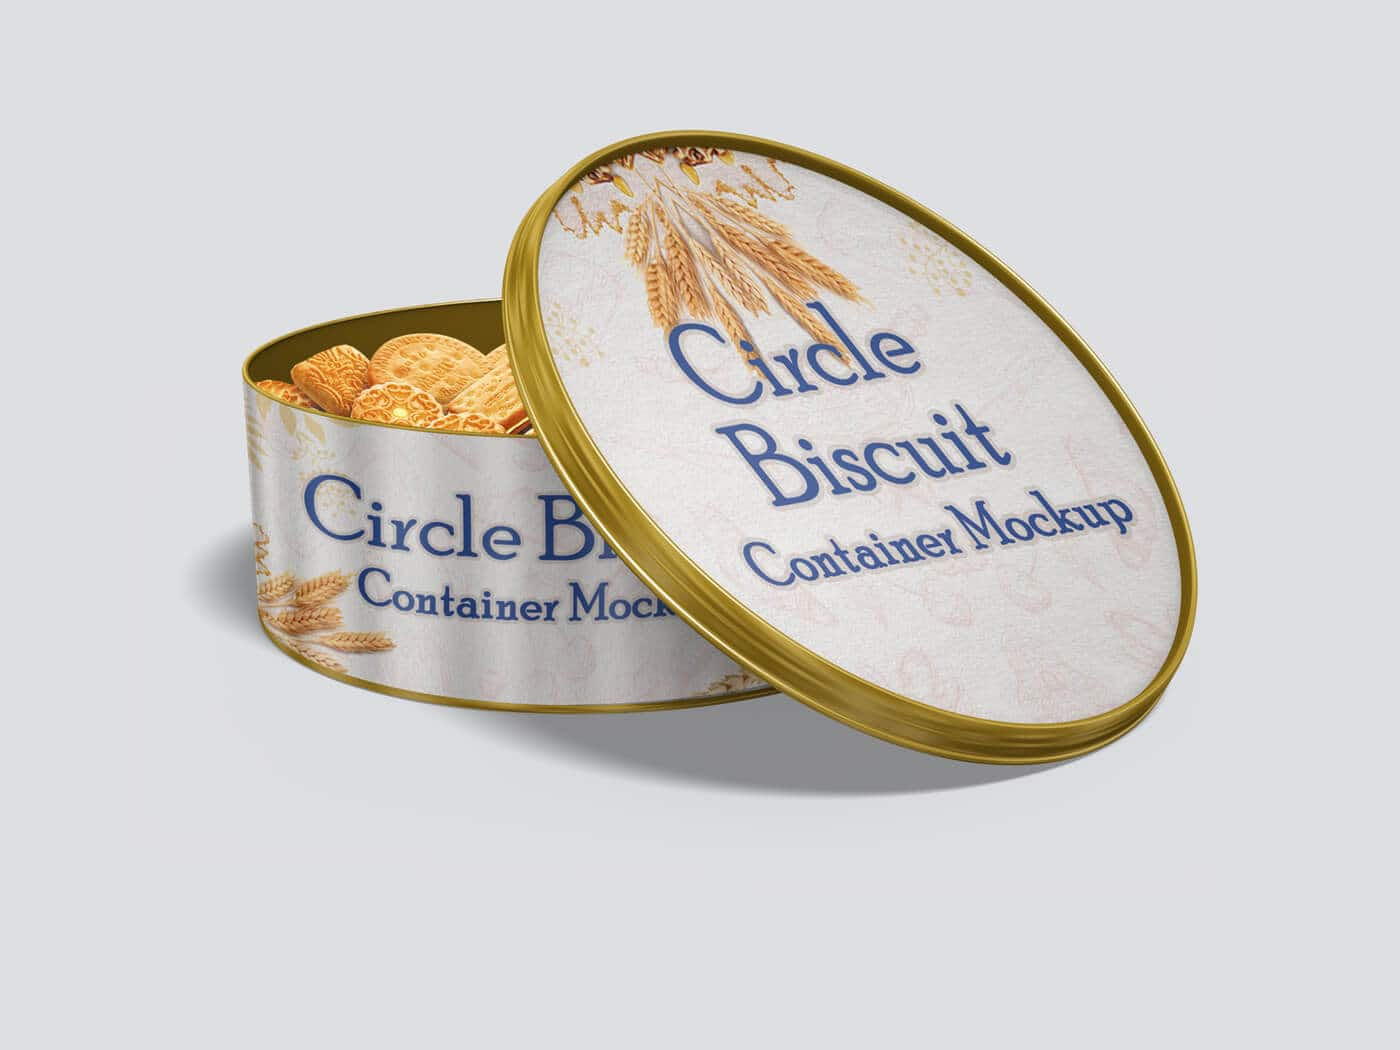 Circle Biscuit and Cookies Tin Container Mockup 02